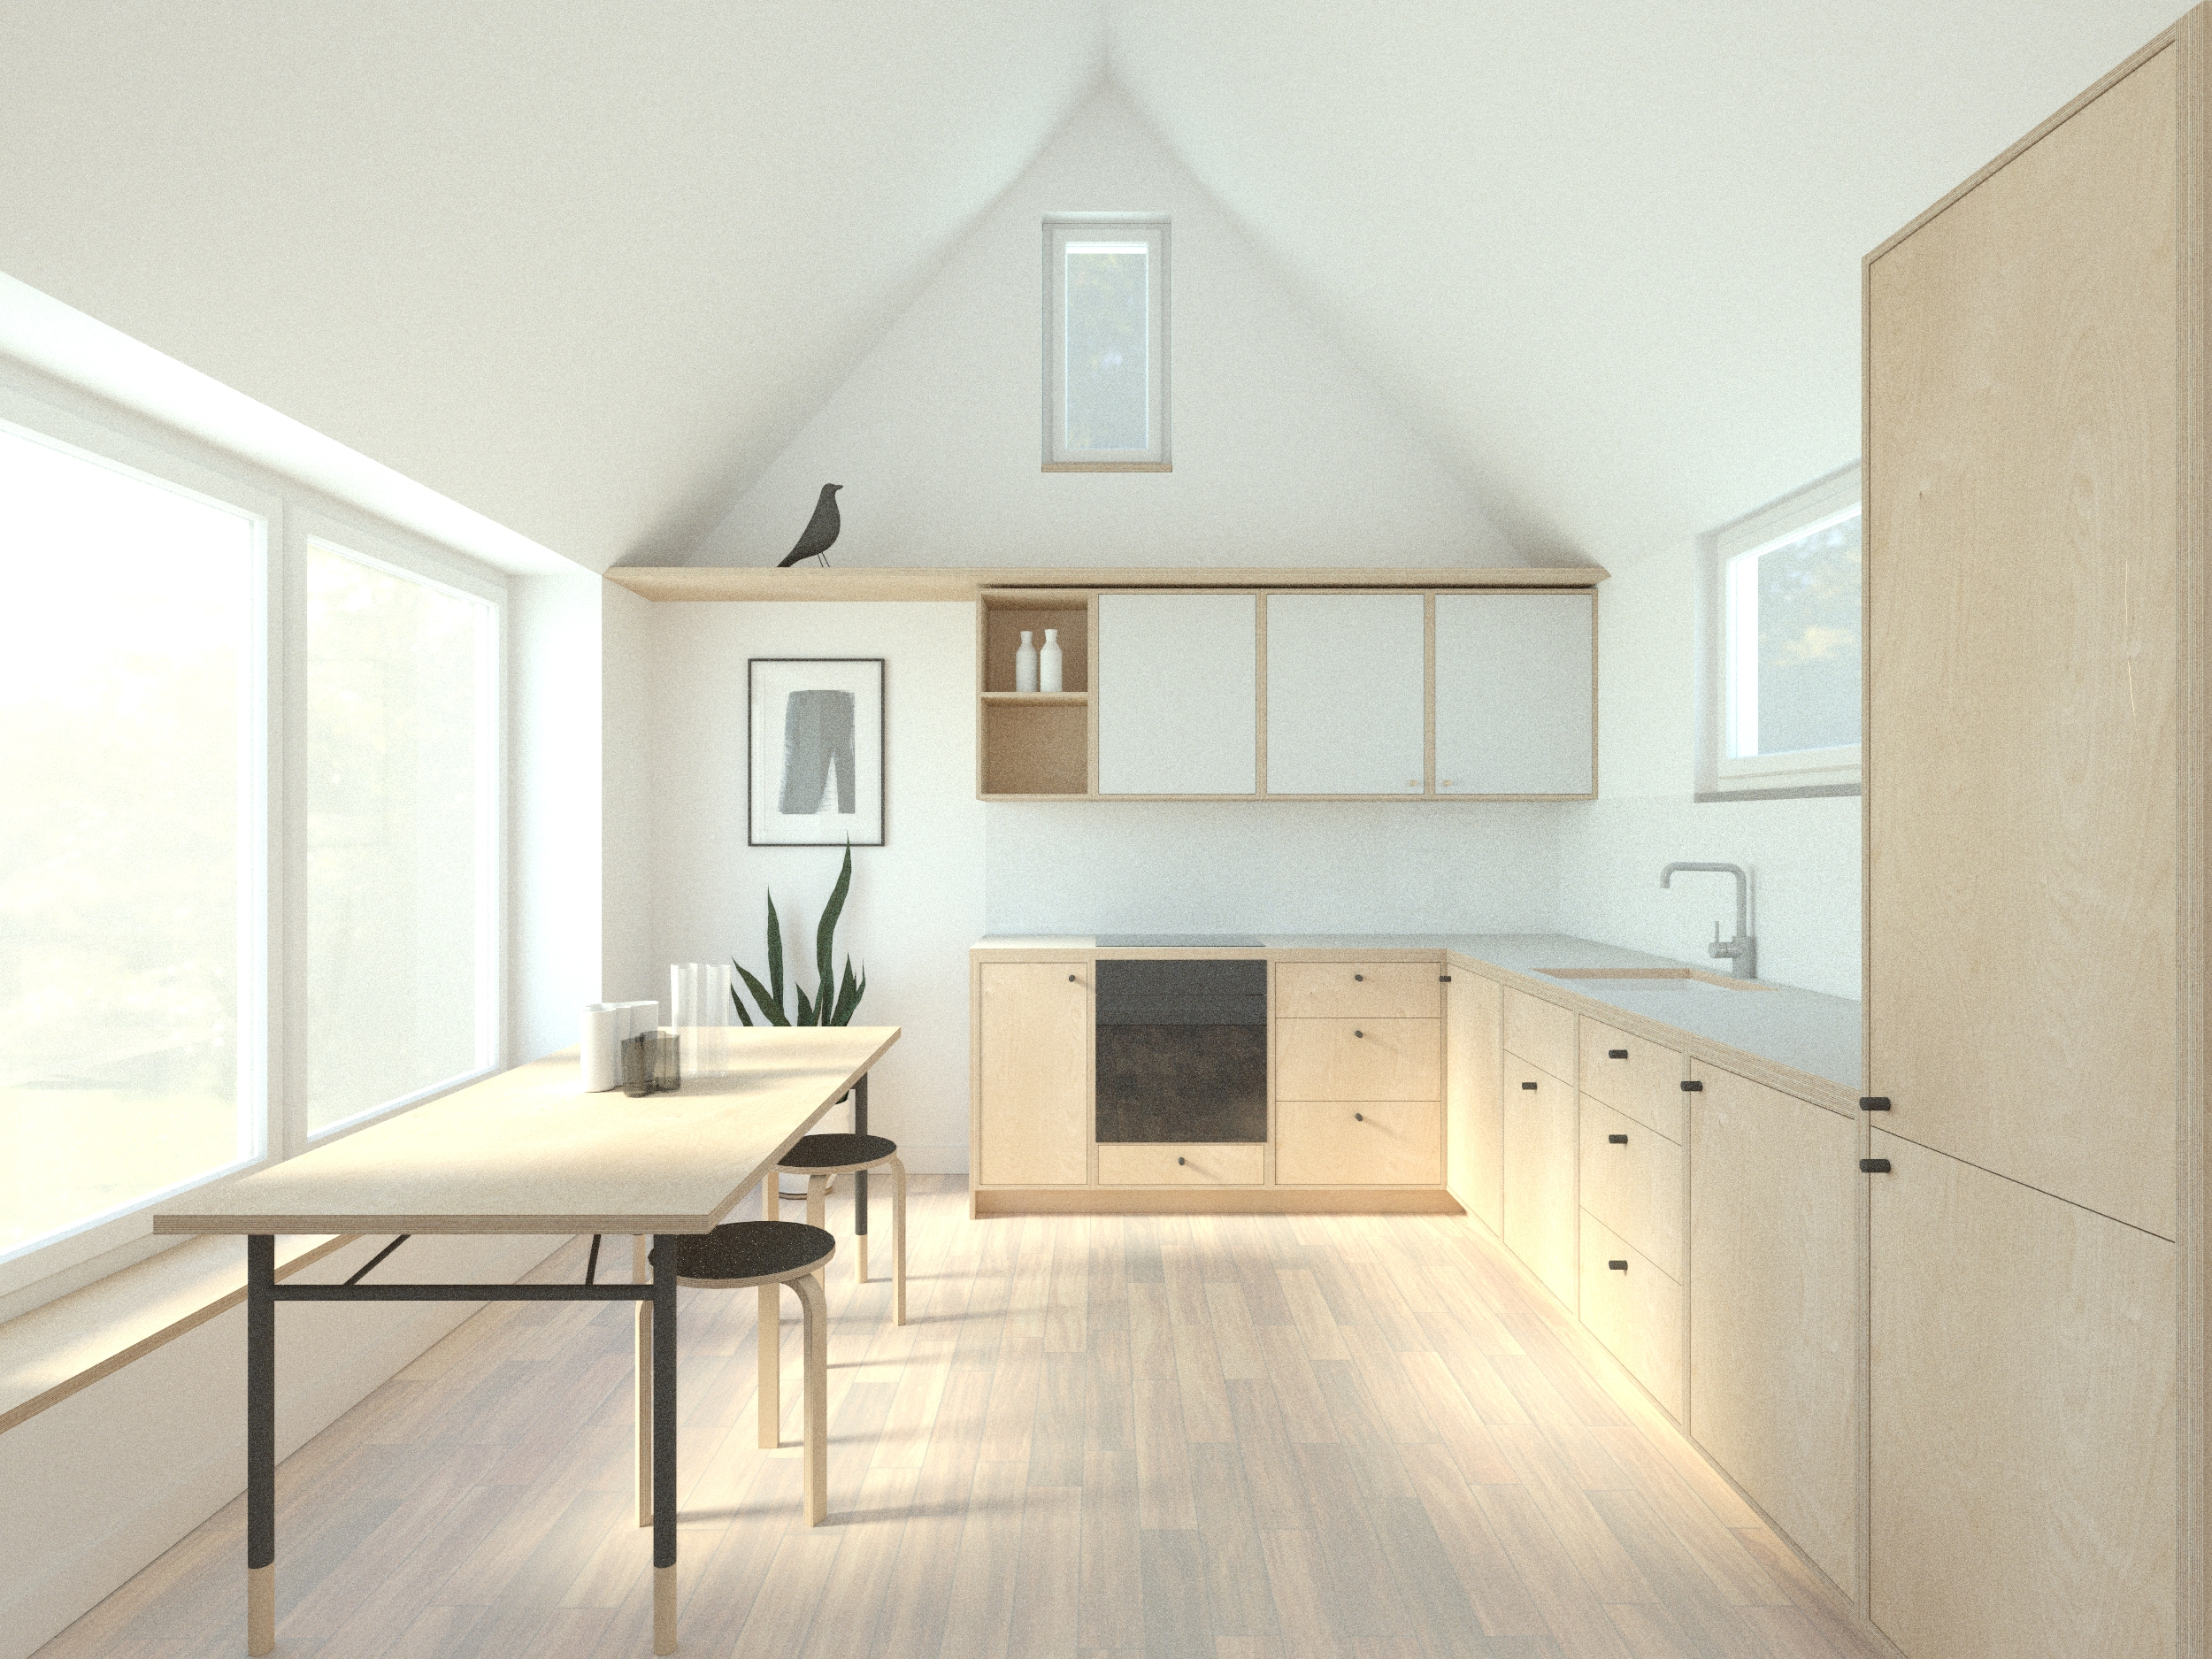 Scandi Design Kitchen in Birch Plywood